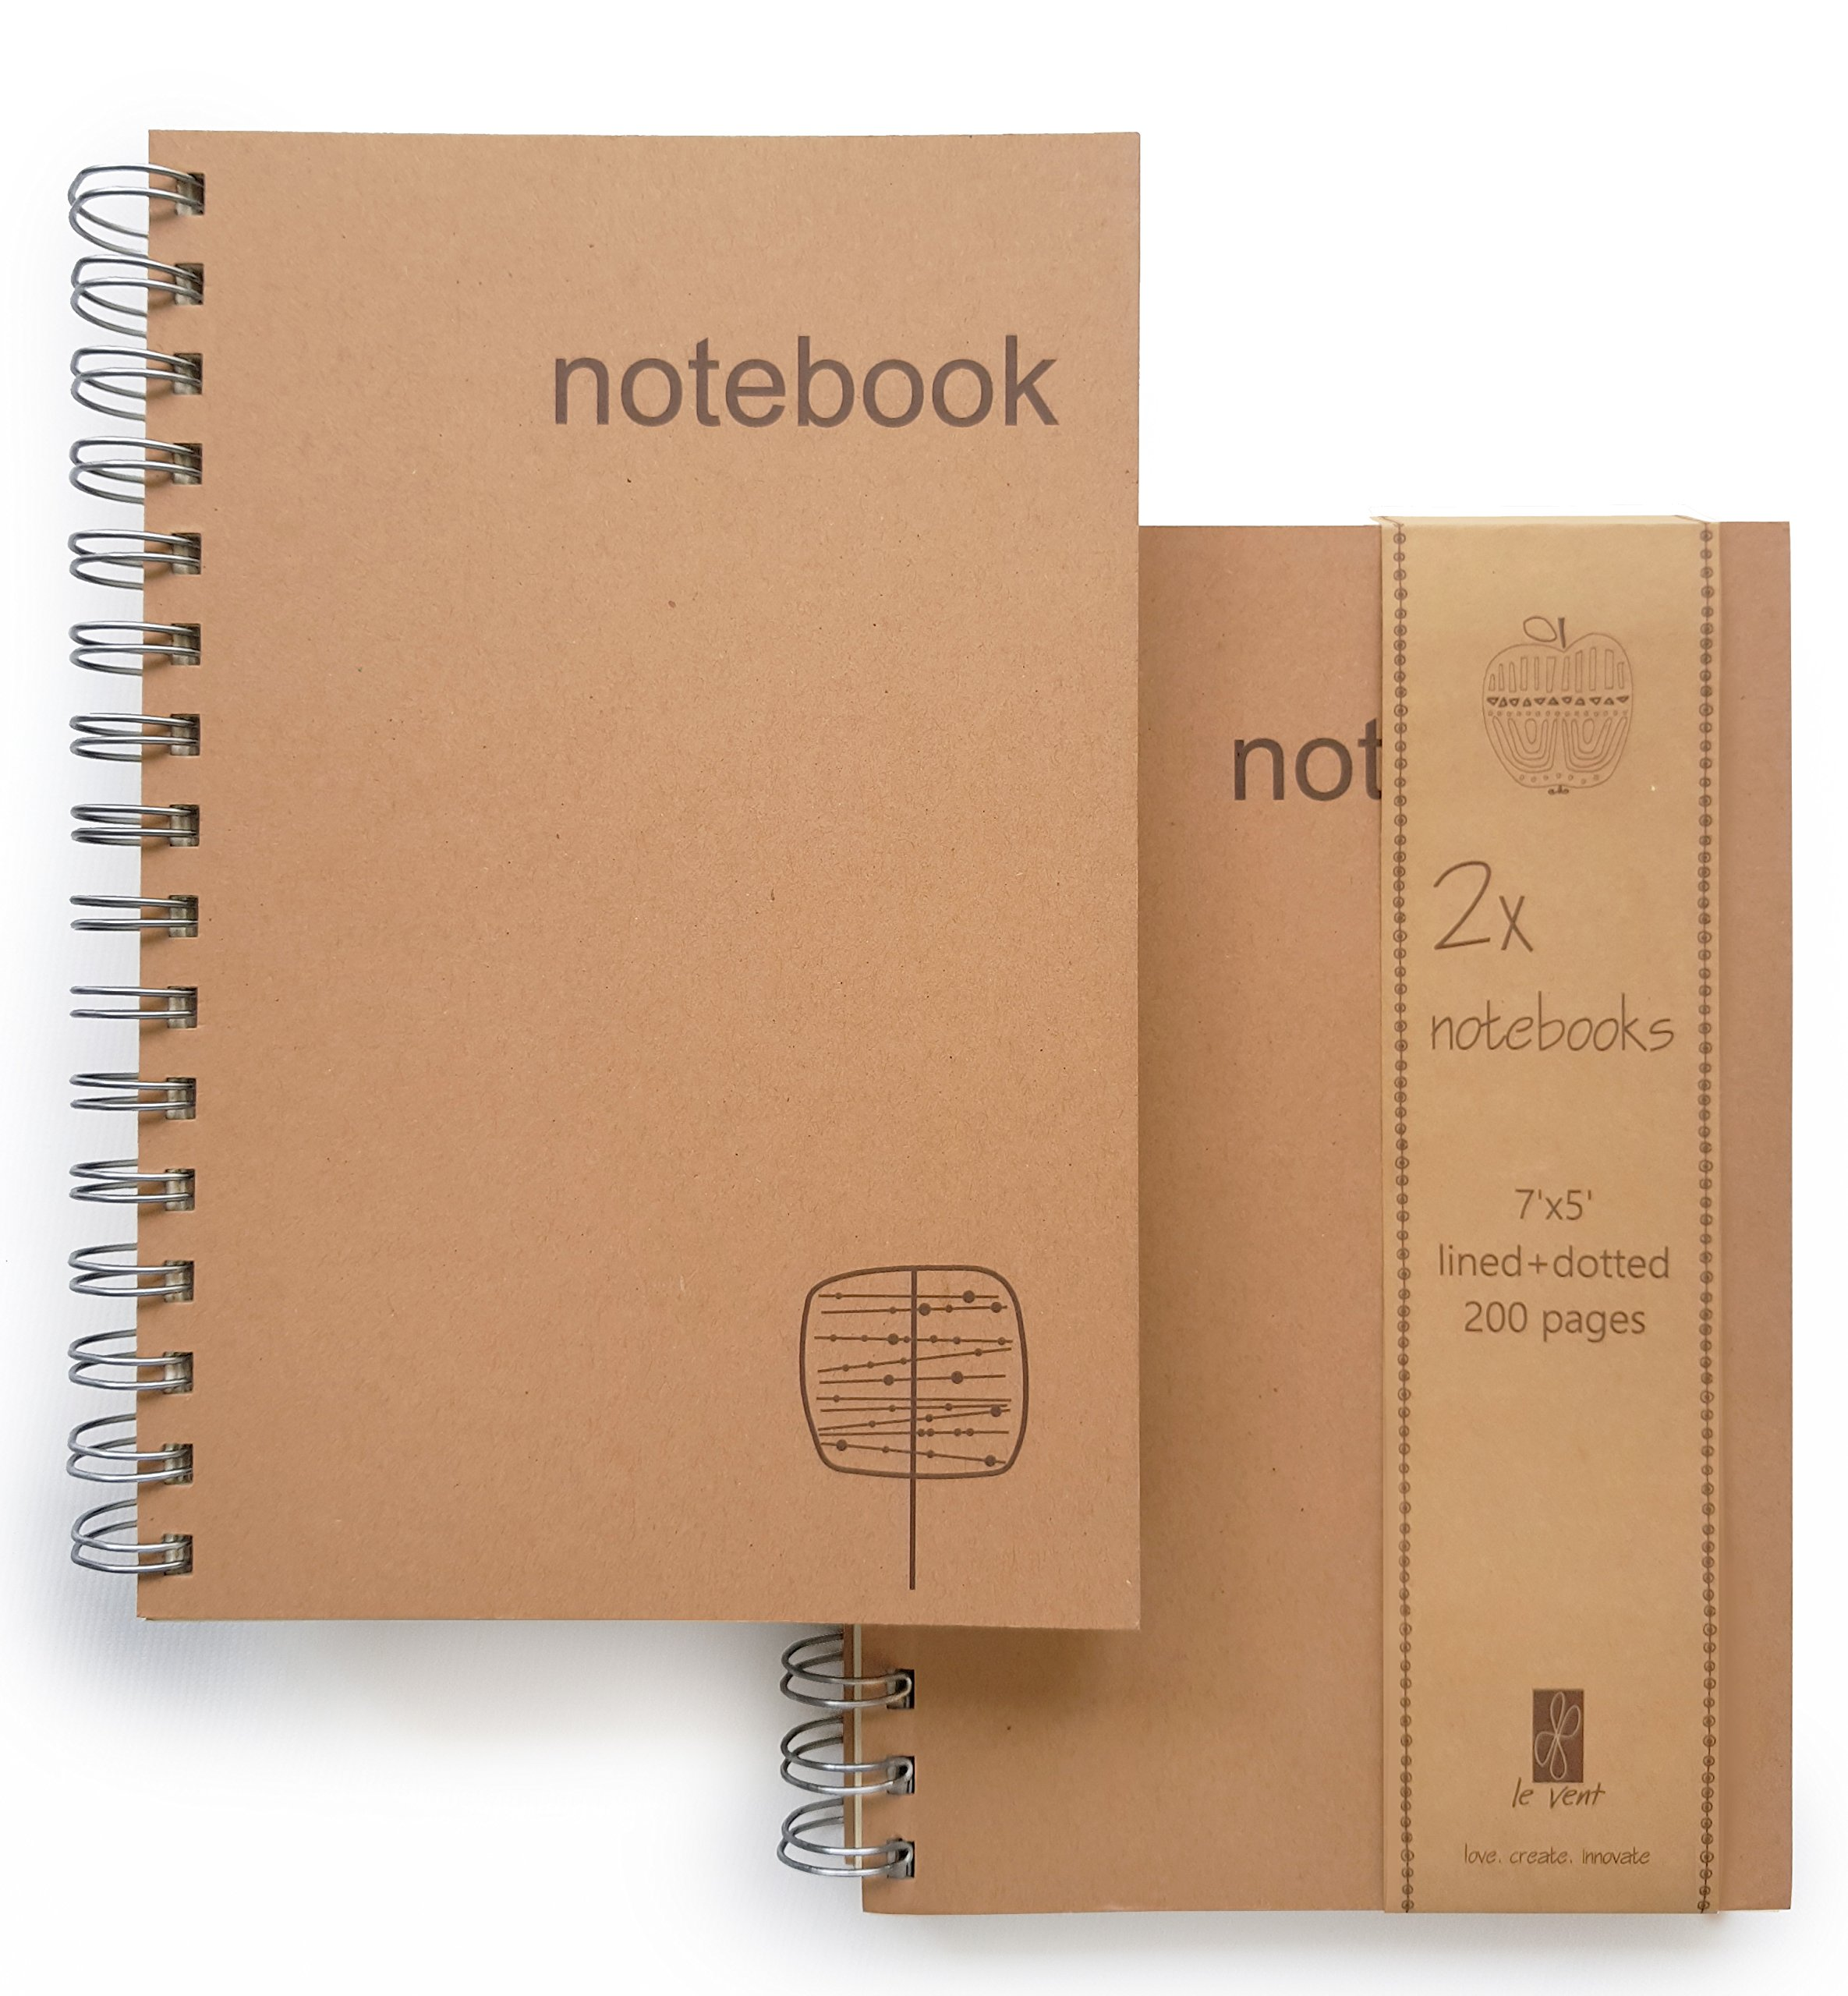 le vent set of 2 spiral notebooks Lined and Dot grid - 200 pages each wirebound kraft notepad, A5 7'x5', ideal for writing, planning, drawing and journal refills